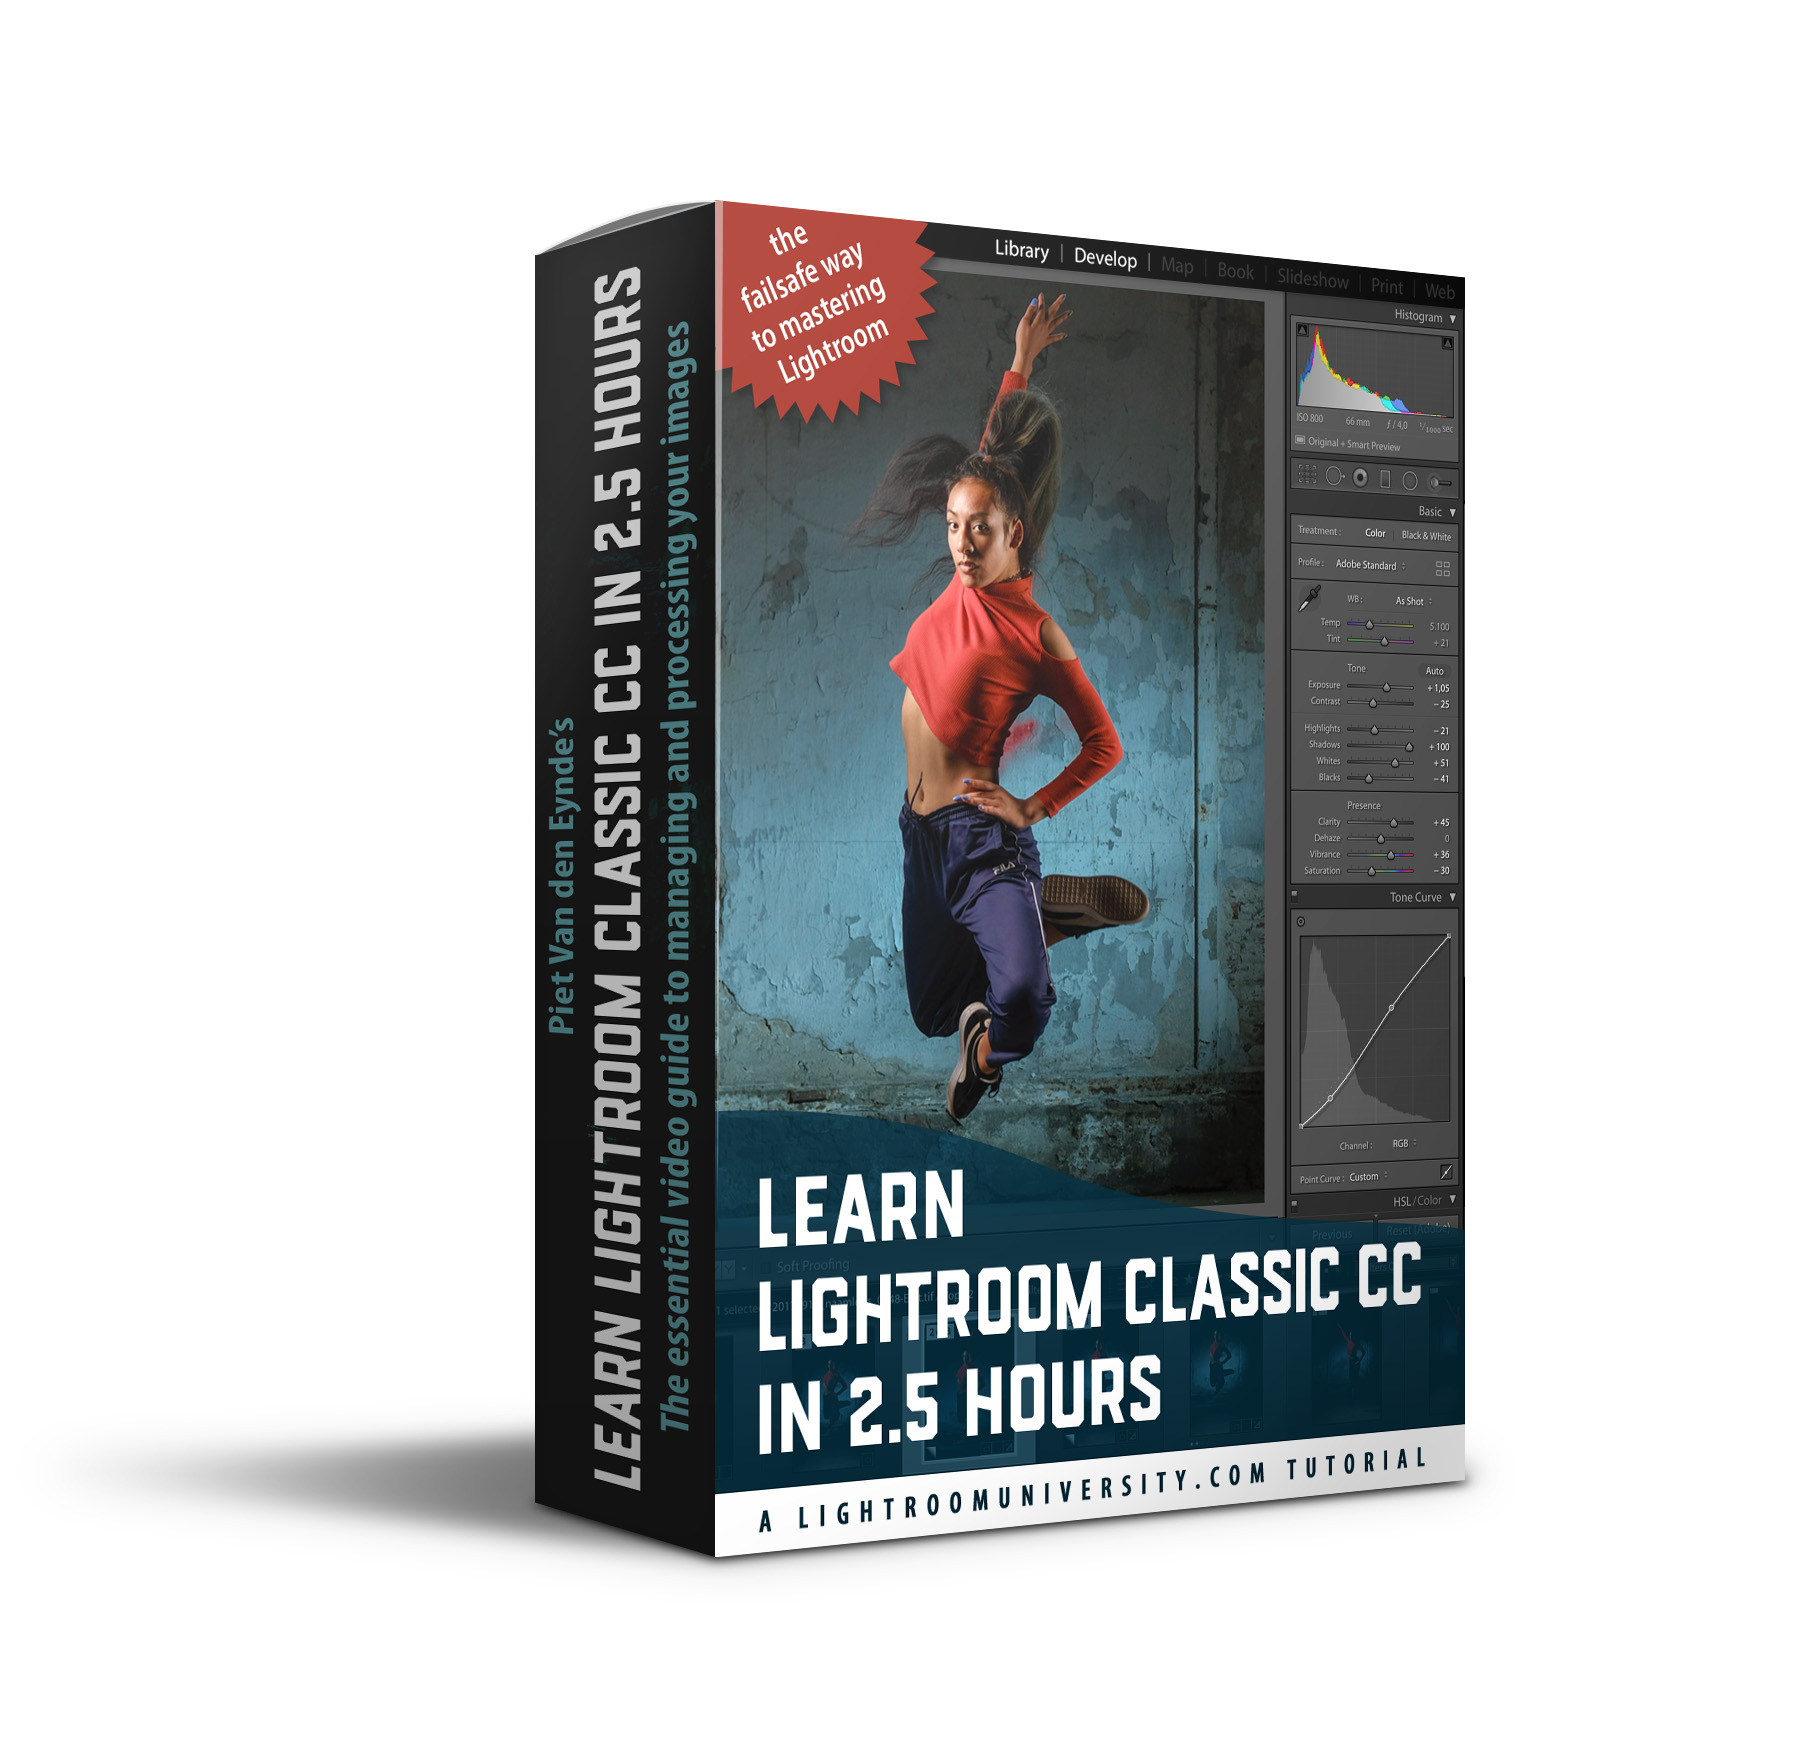 Learn Lightroom the right way - ✔︎ understand how Lightroom is different from other editing software like Photoshop✔︎ learn a failsafe way to importing images✔︎ understand what a Lightroom Catalog really is✔︎ discover my tried and true best practices for file and folder management✔︎ unlock the essential develop module tools✔︎ master the export dialog to share your images✔︎ this course is fully downloadable. Buy it now and watch it when you like, where you like and for as long as you like!